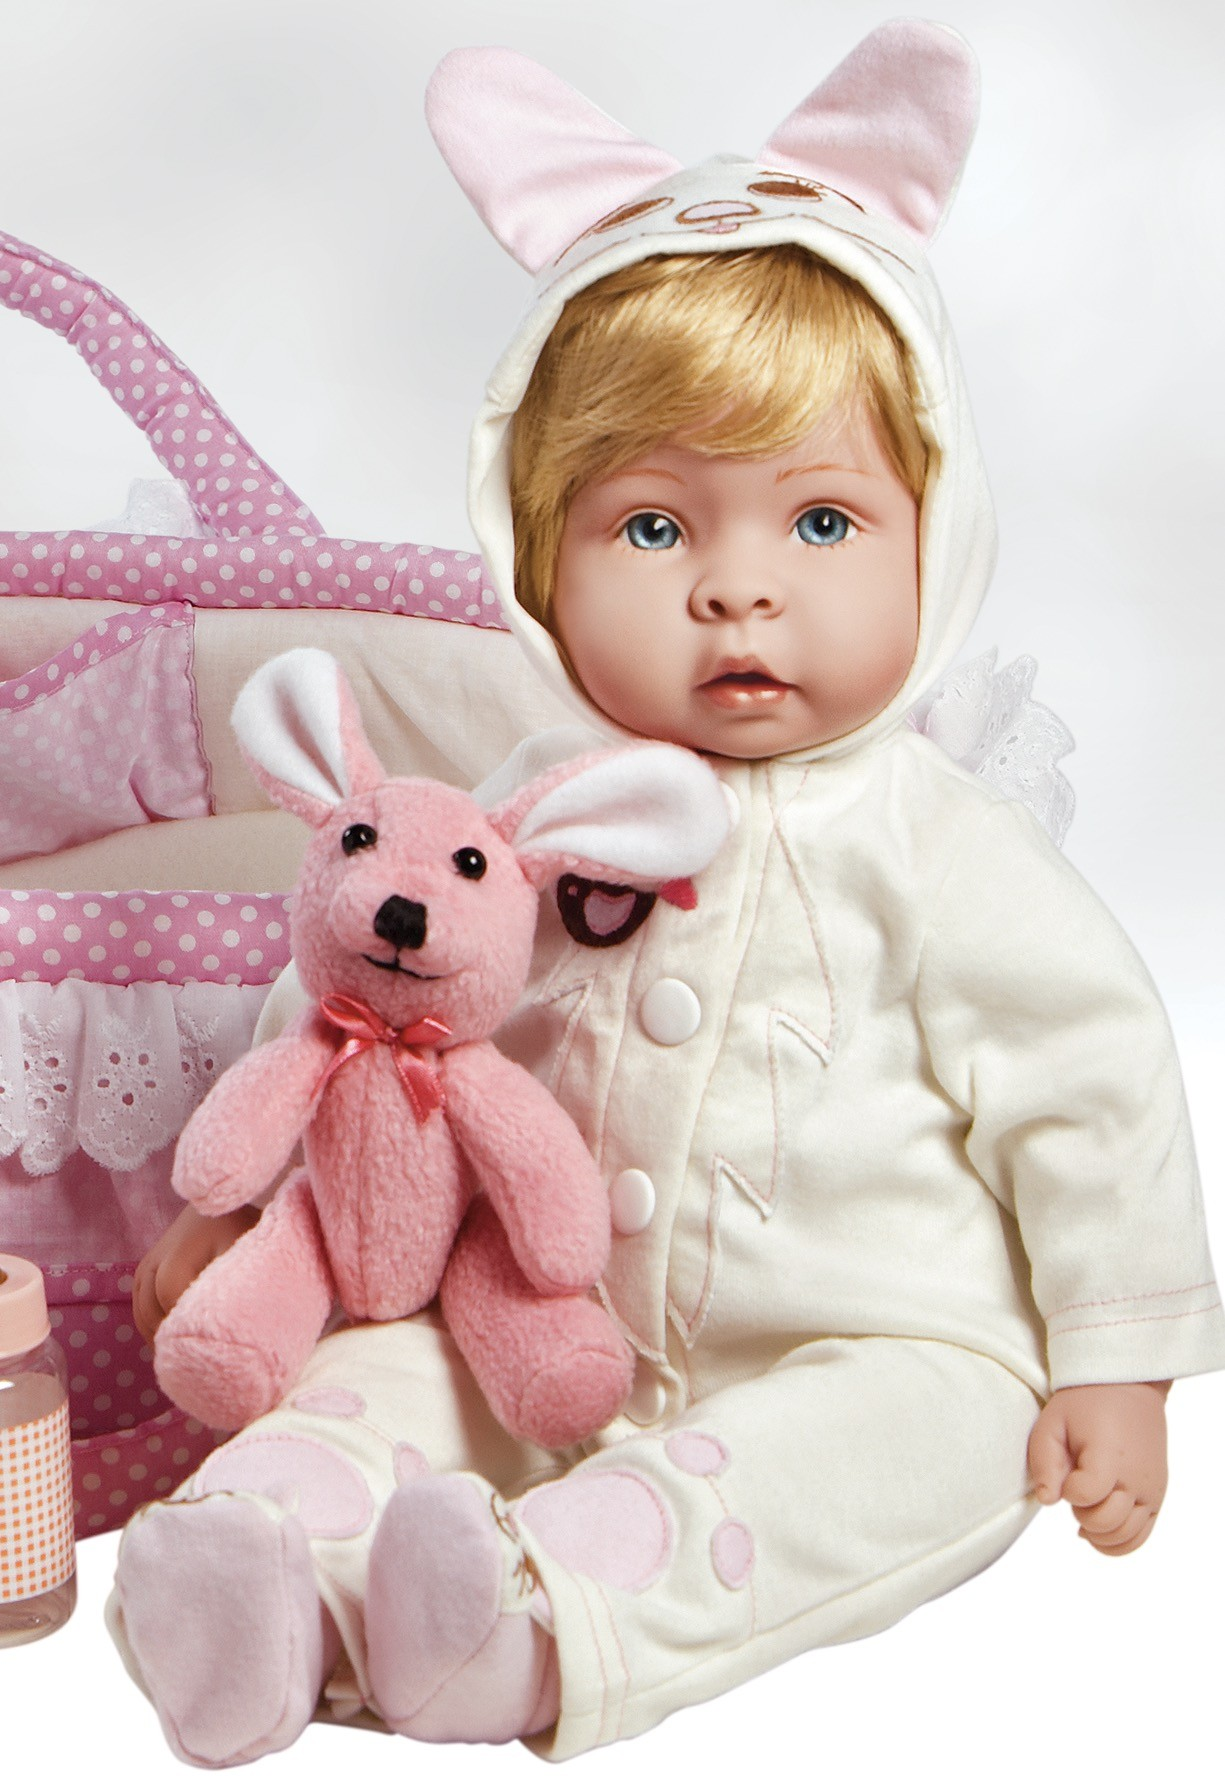 Real Looking Baby Doll, Finn & Sparky, 17 inch Lifelike Baby in